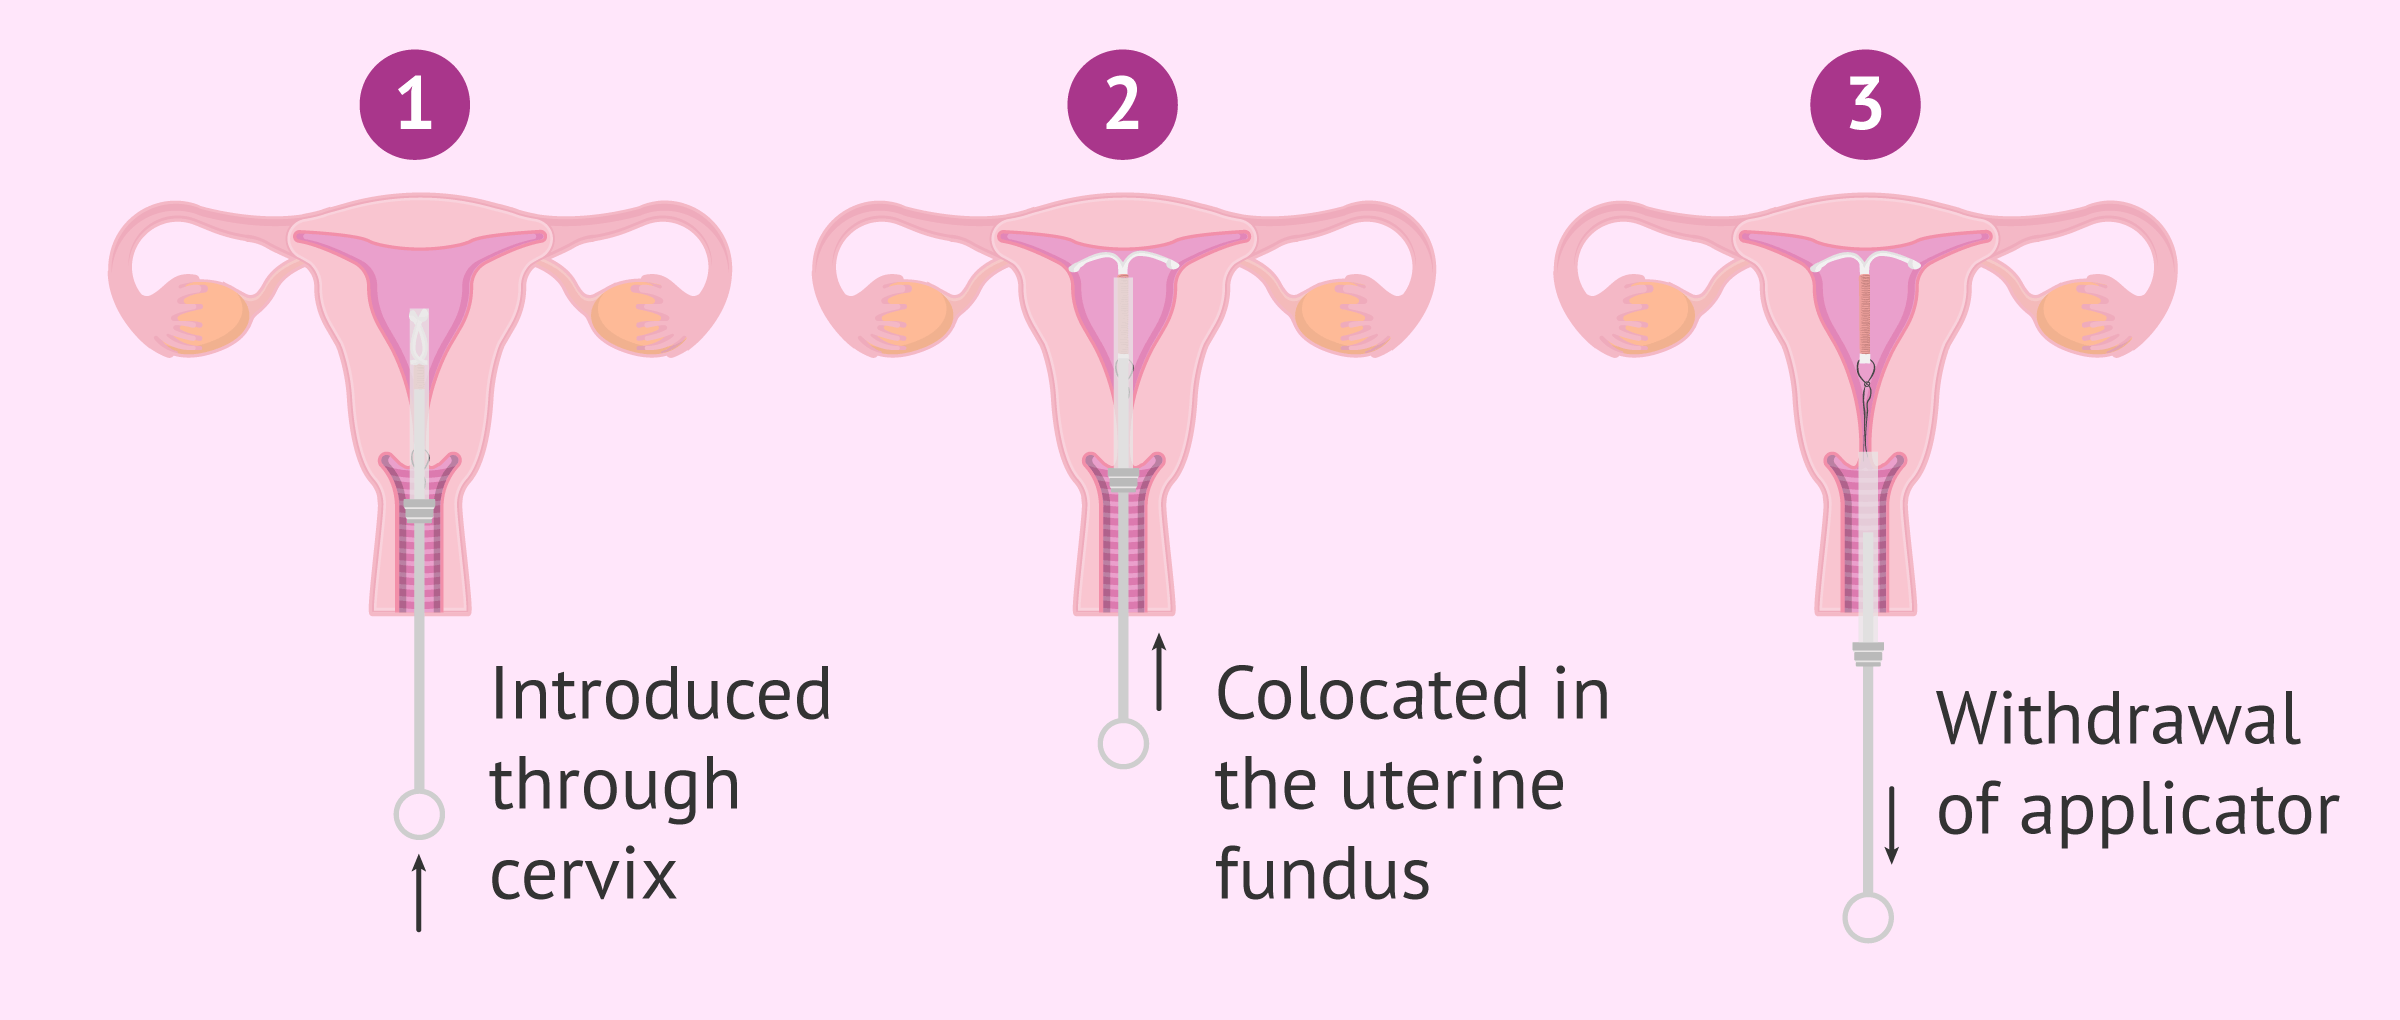 Application of IUD